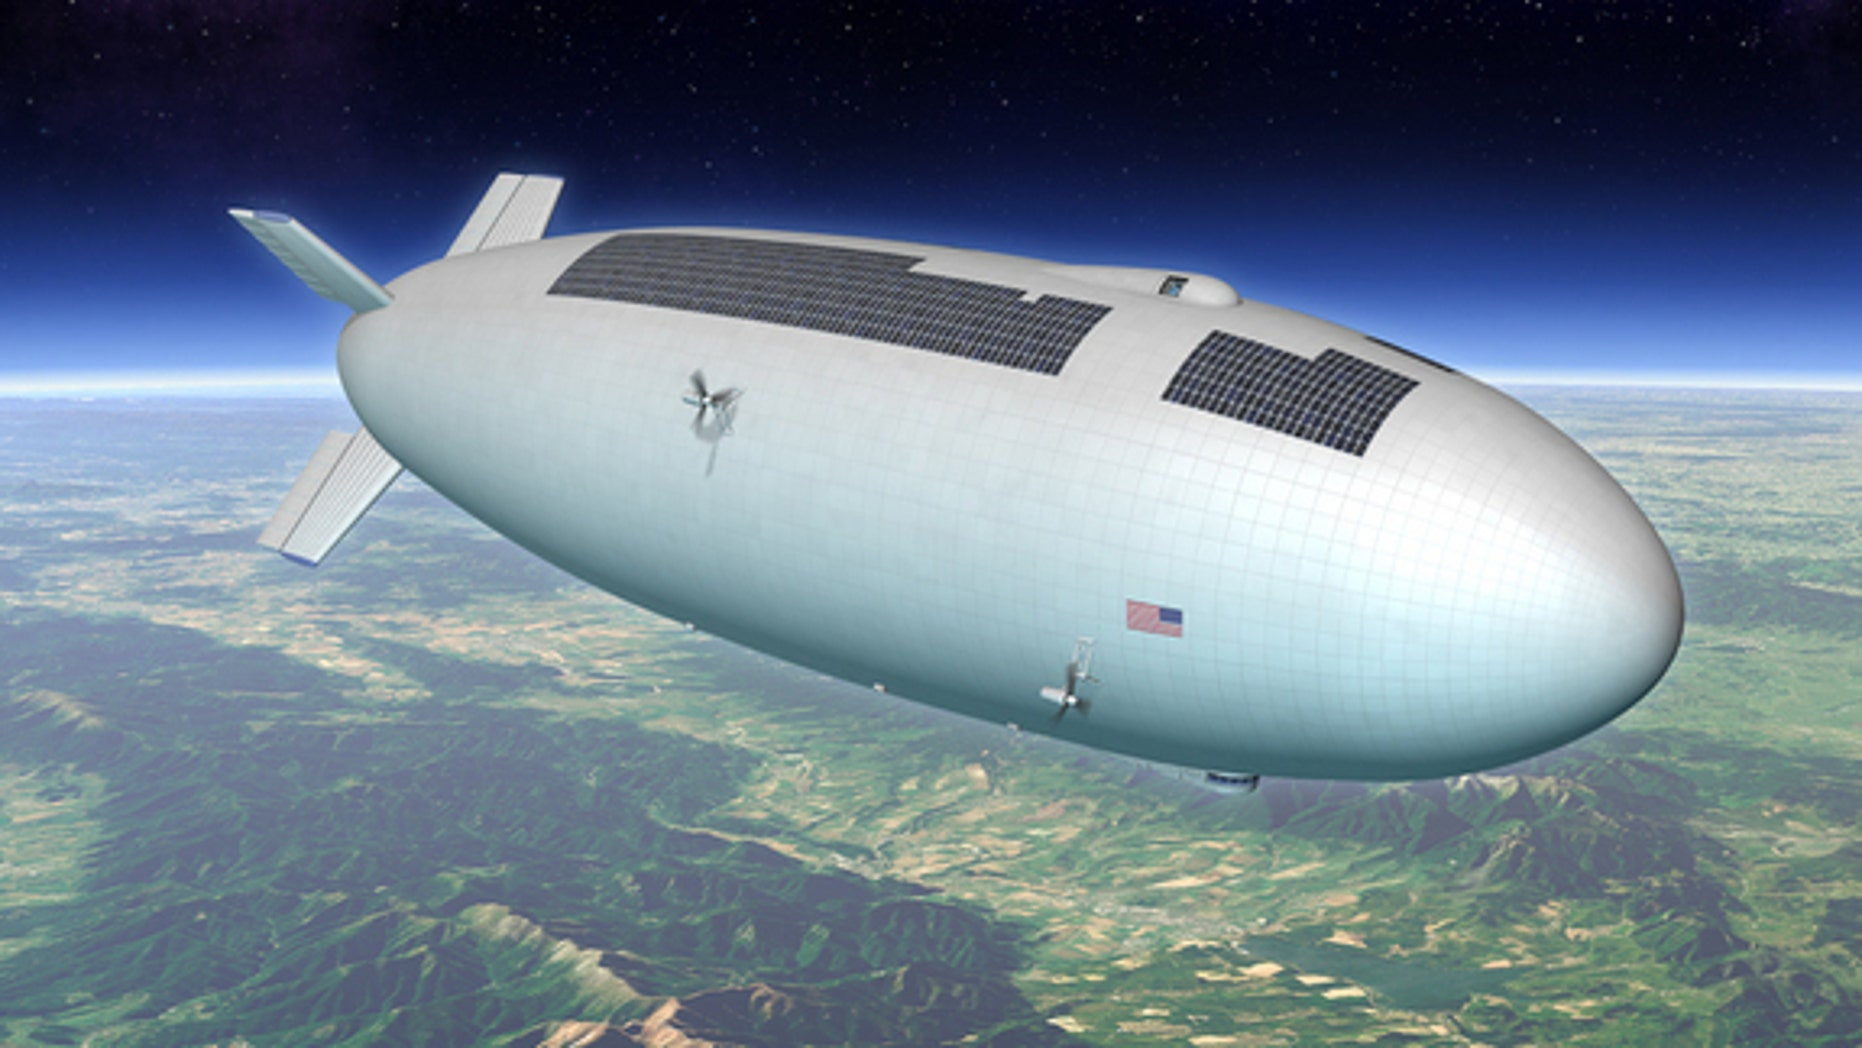 This artist's conception of a high-altitude airship is one of many possible models that could come from an airship design challenge.